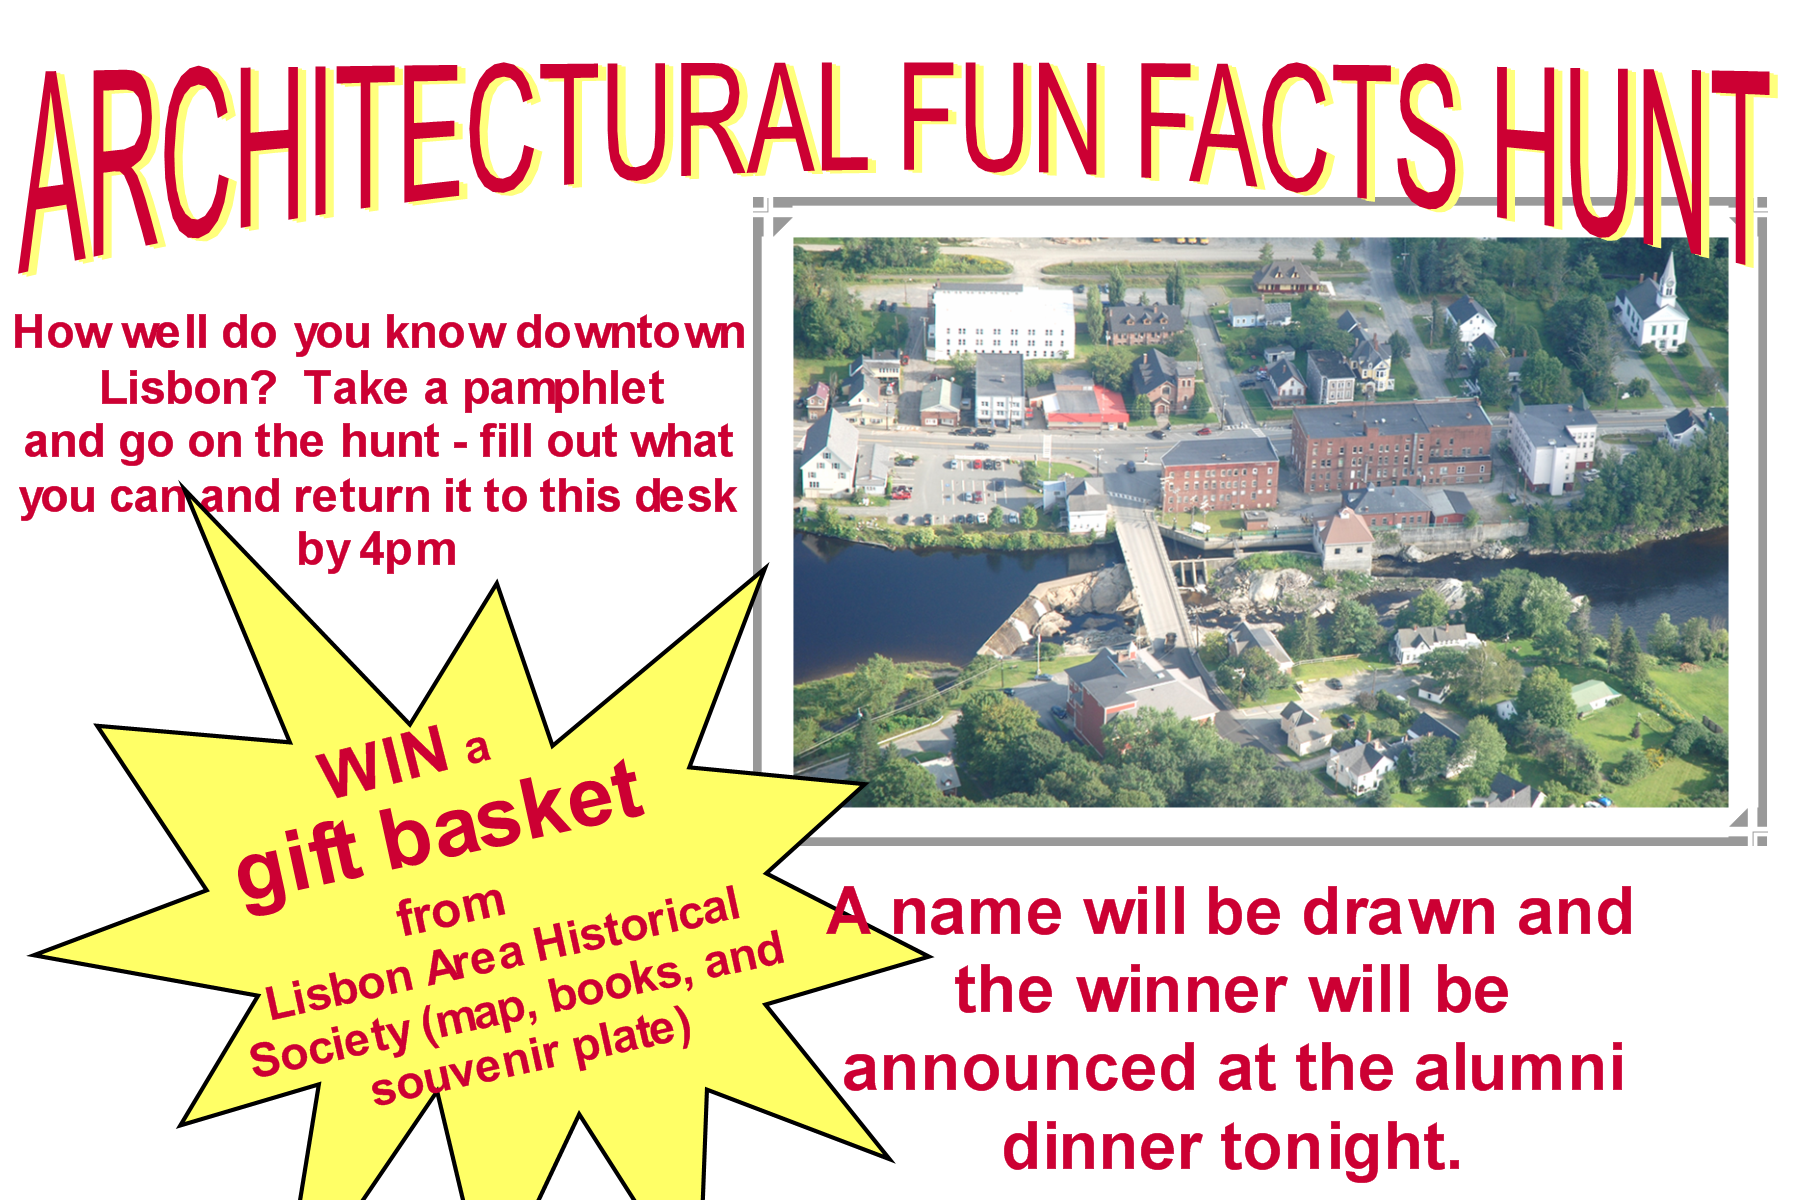 Architectural Fun Facts